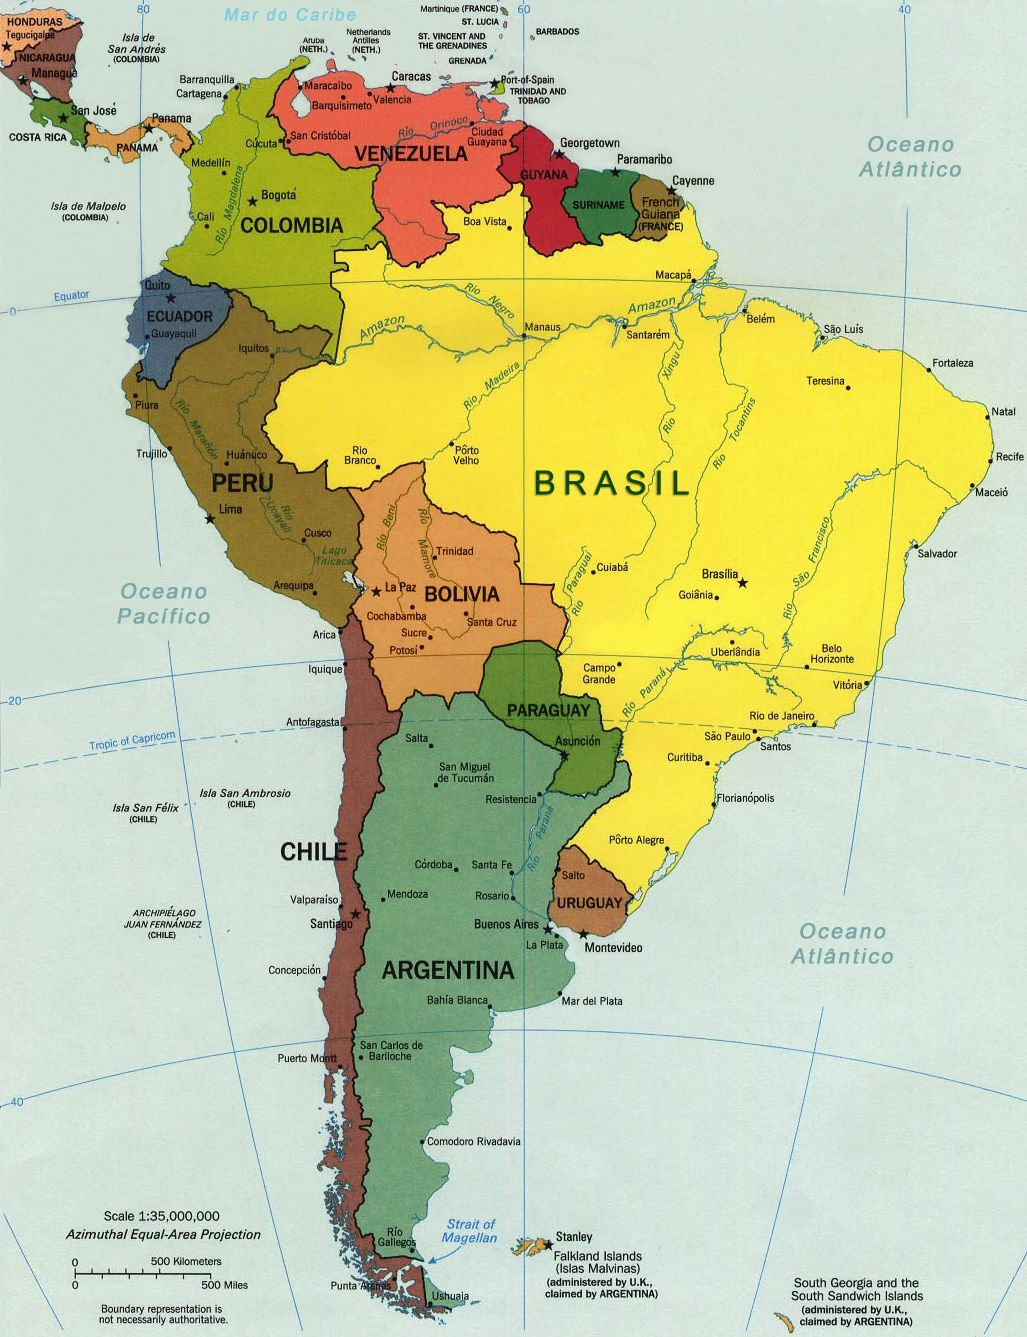 america do sul mapa Mapa América do Sul | Mapas | Pinterest | Brazil, Adventure awaits  america do sul mapa